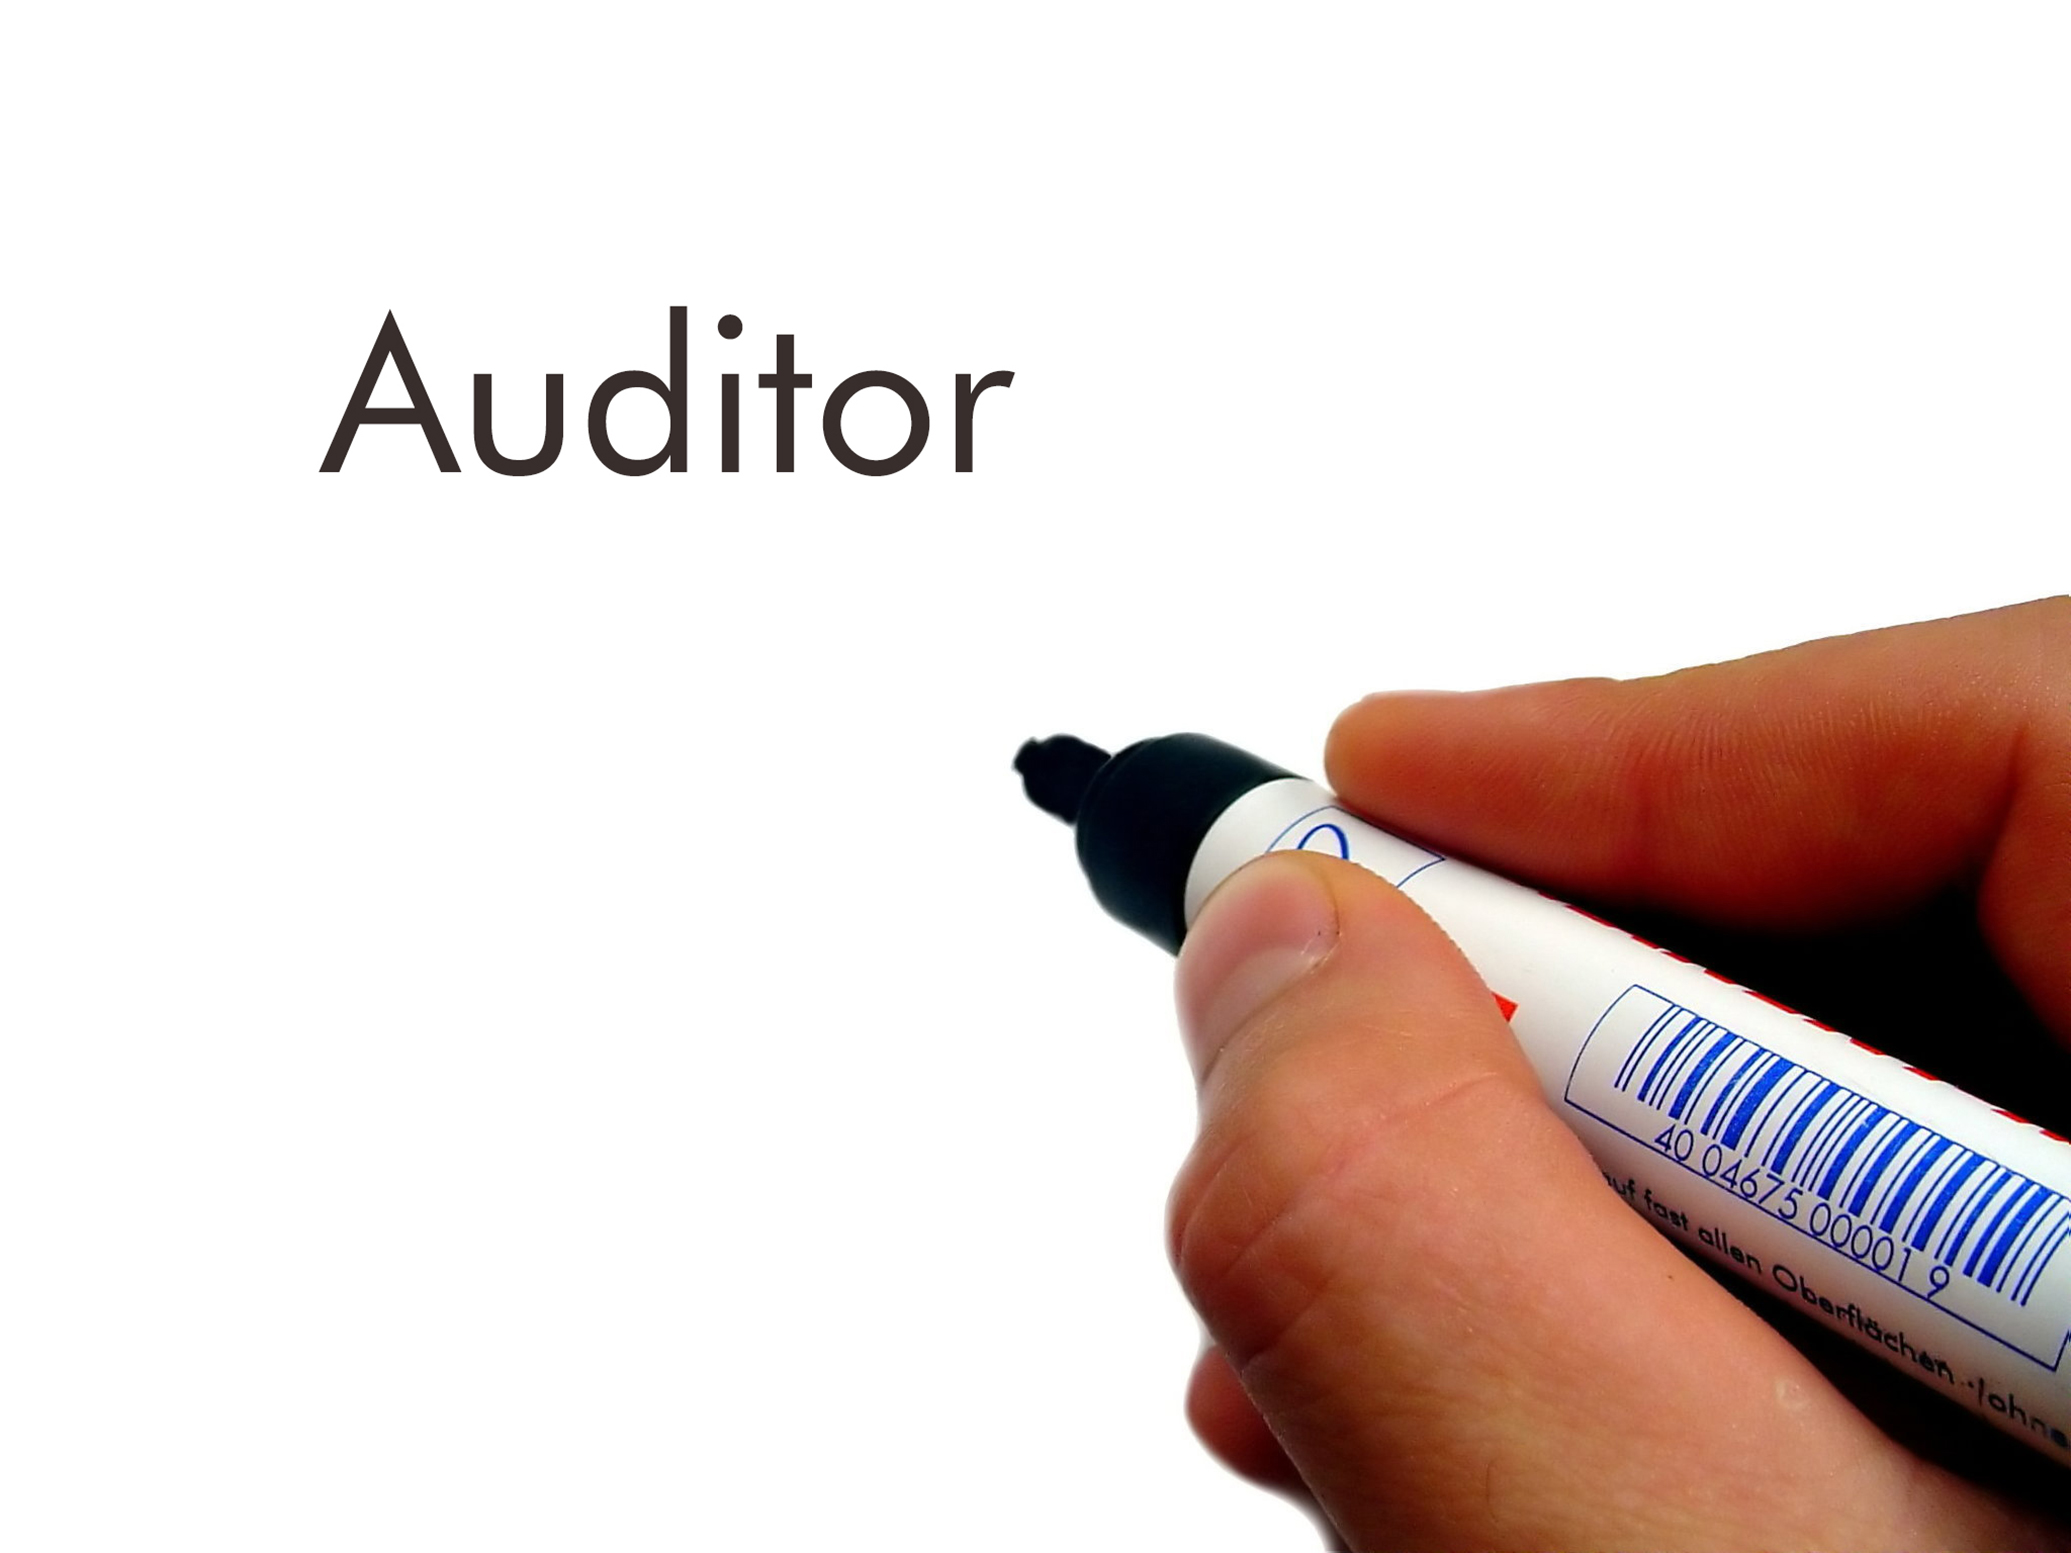 how to write an effective auditor job description